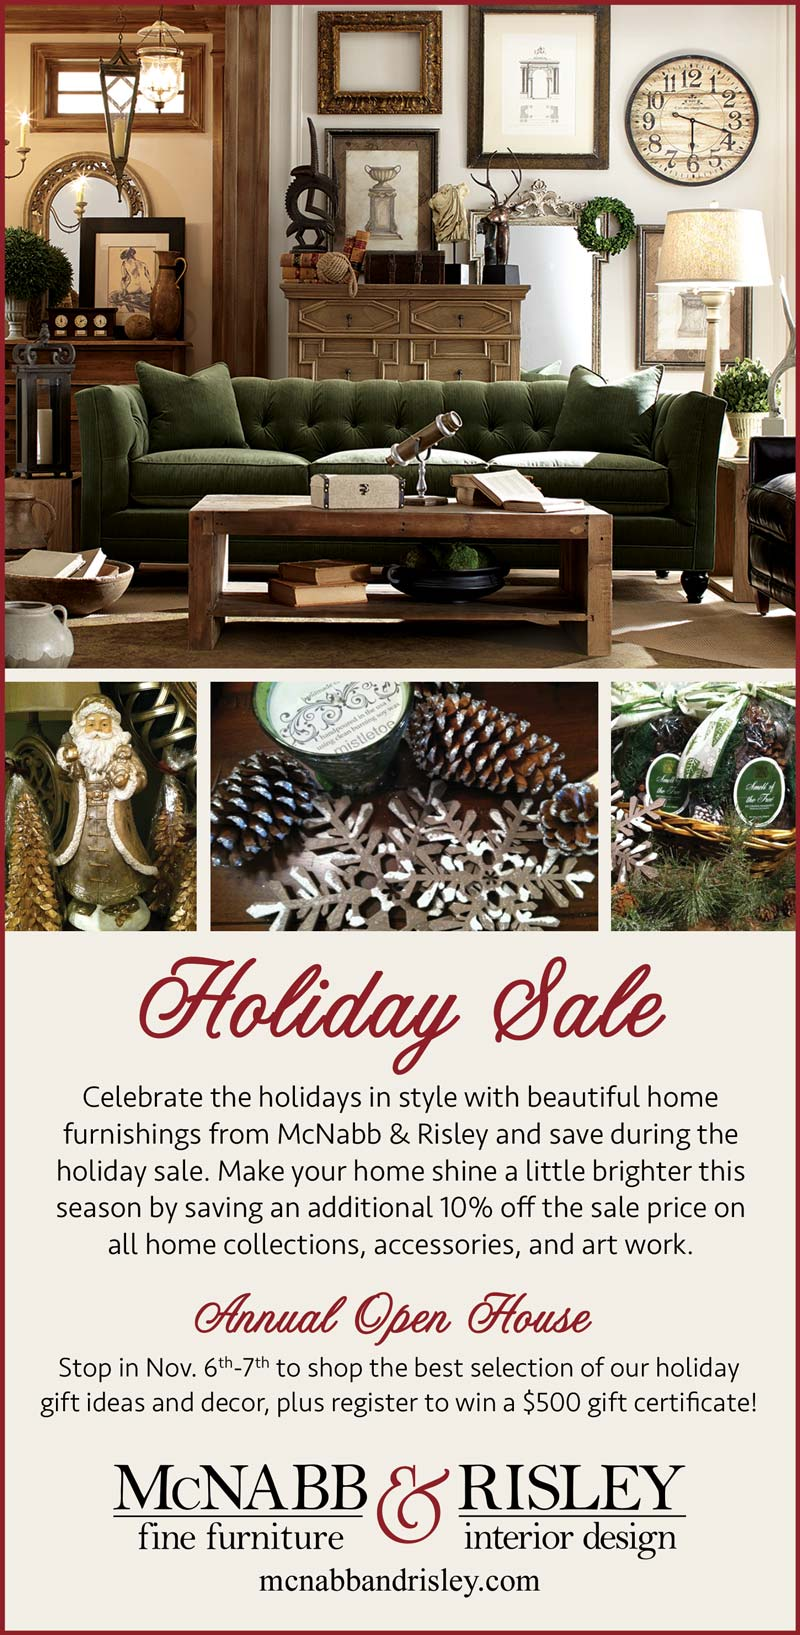 Visit us during the Holiday Sale! - McNabb & Risley